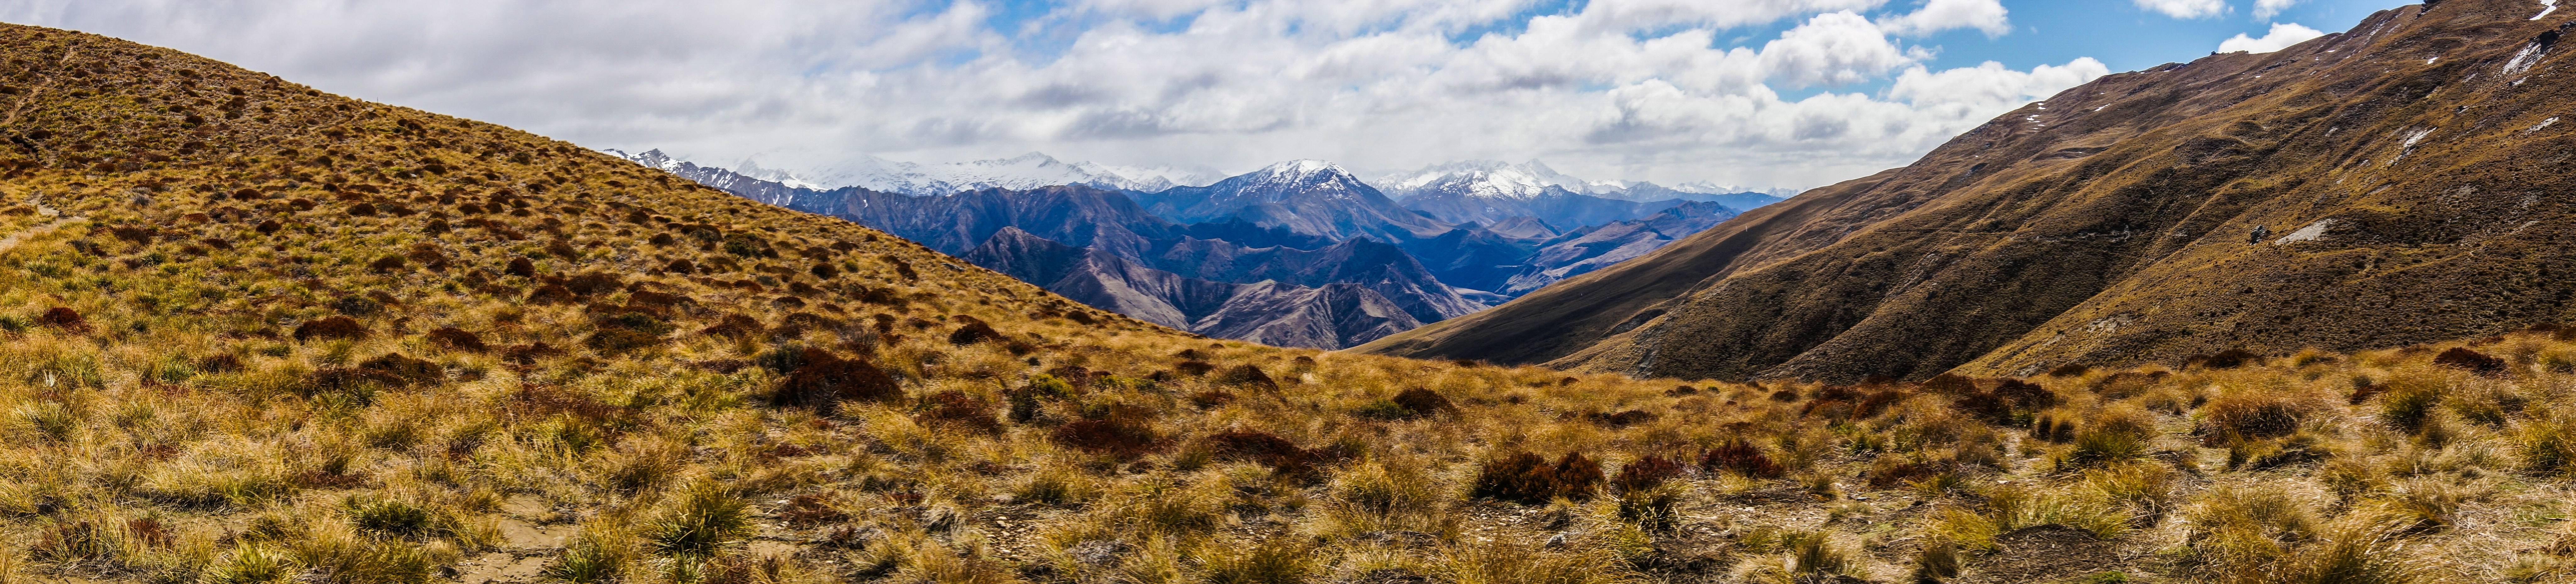 Southern Alps From Ben Lomonds Saddle wallpaper